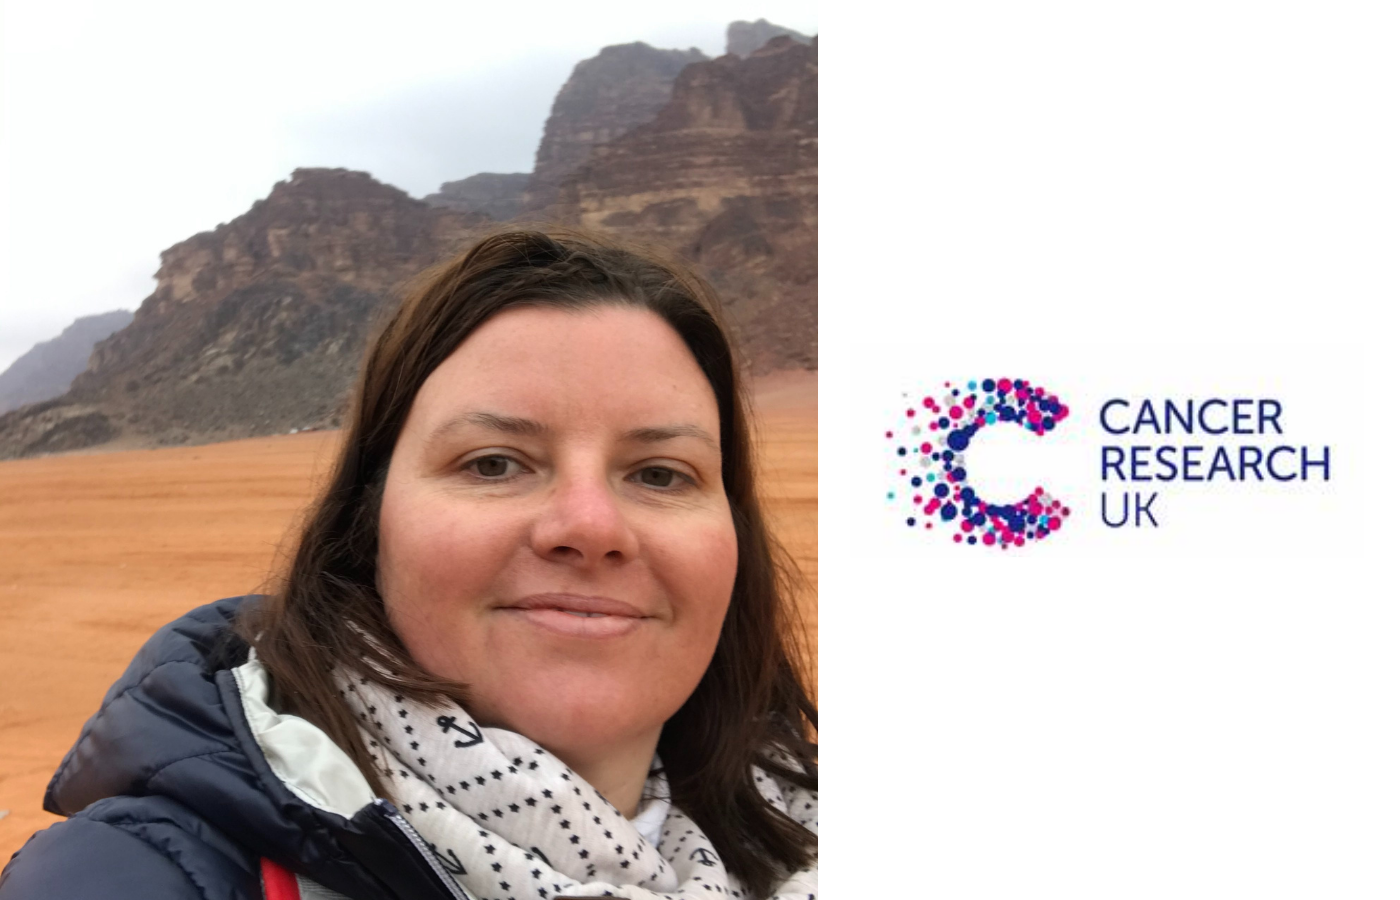 Image of Jana and cancer research UK logo